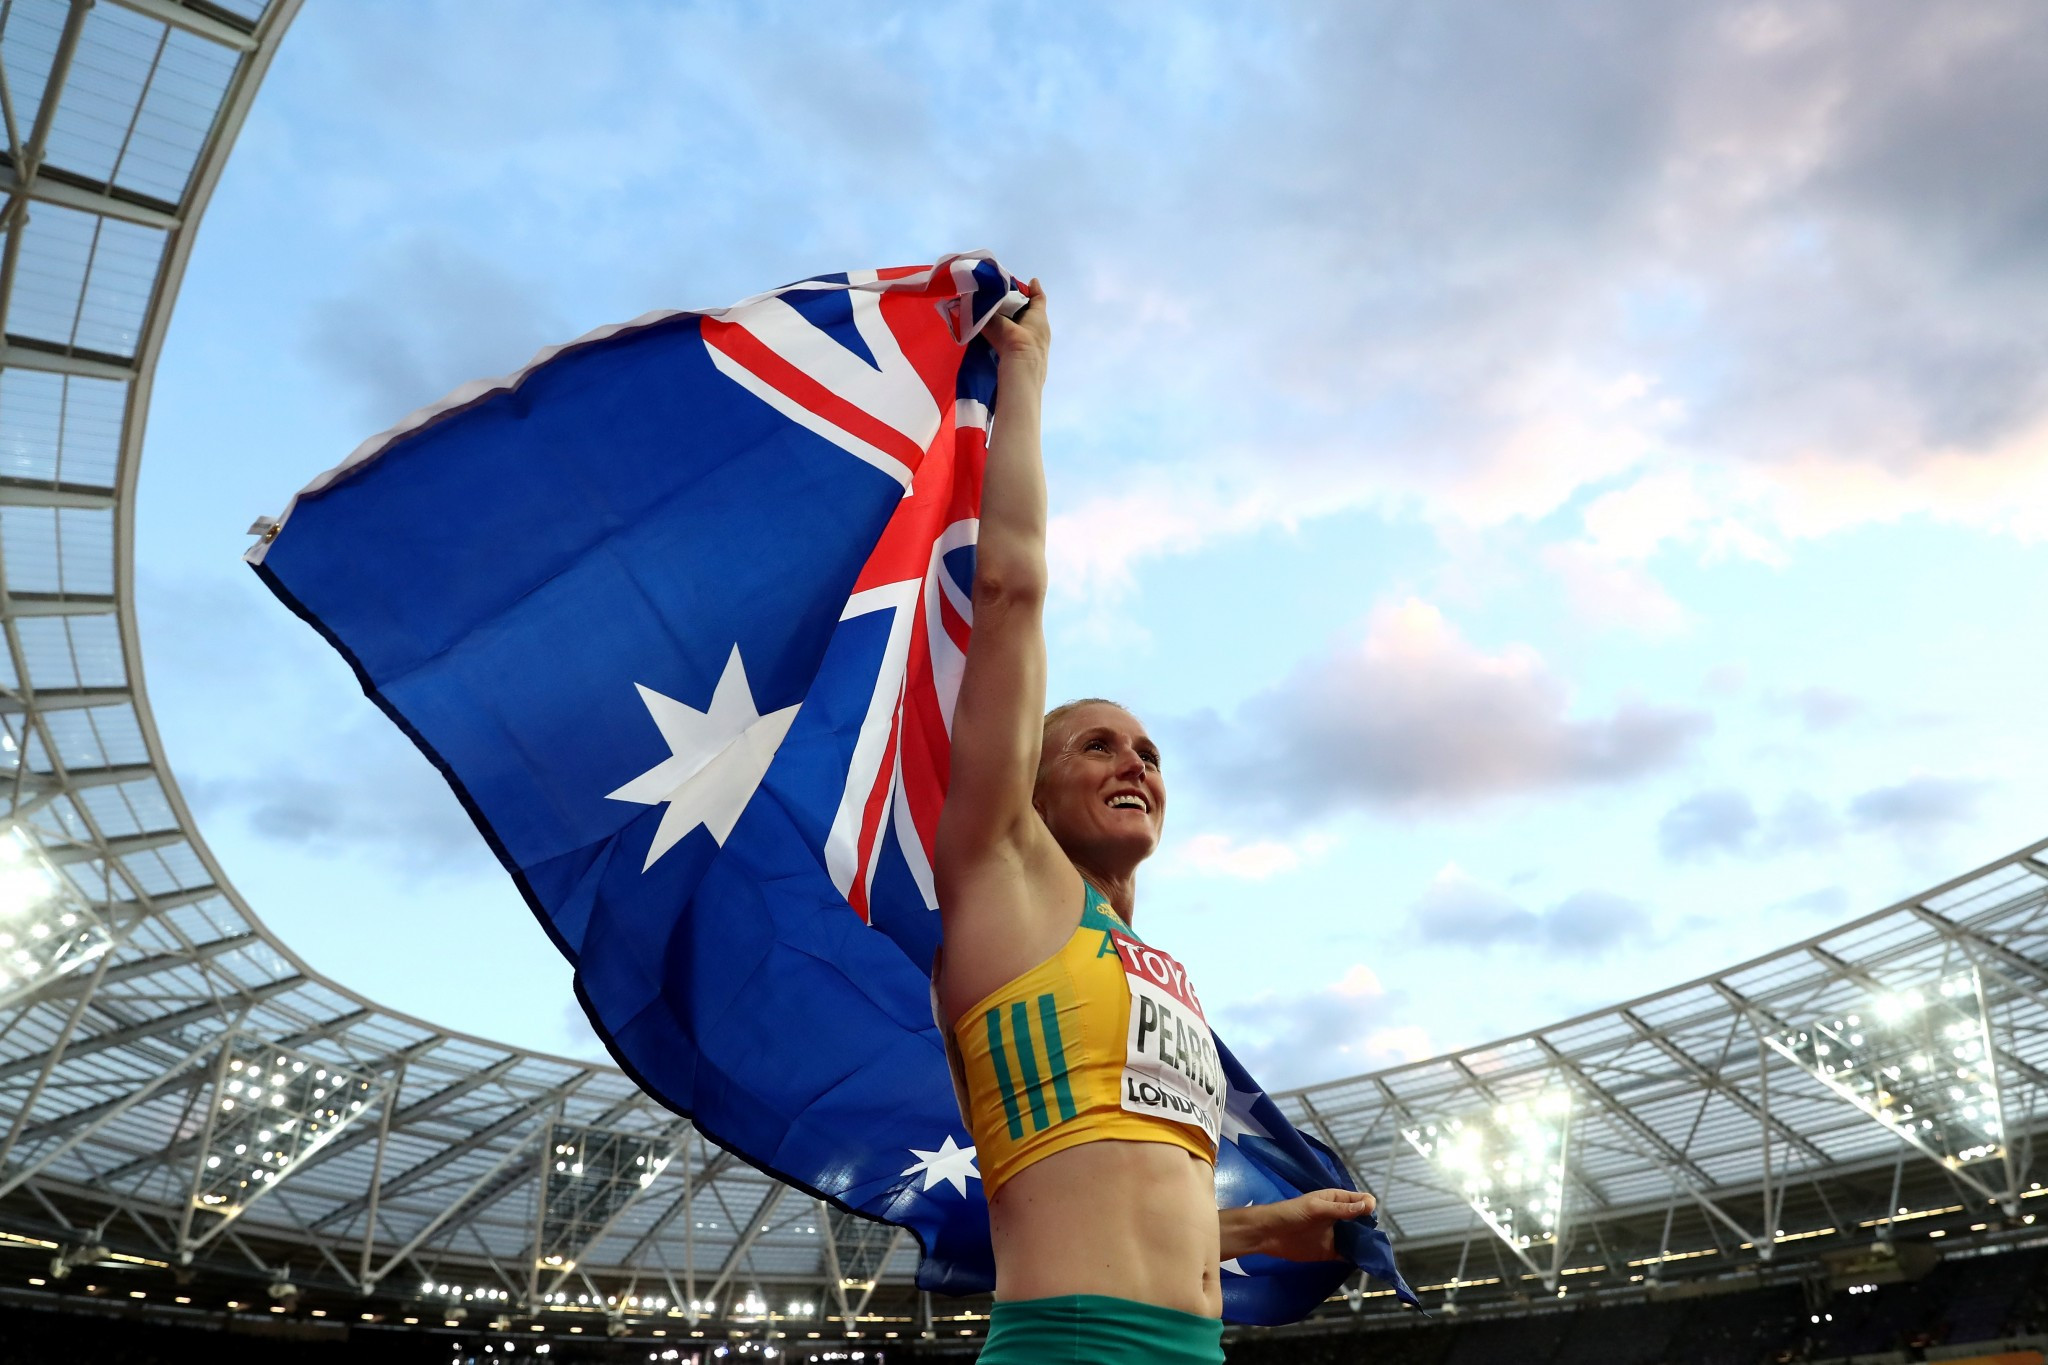 Sally Pearson, a former two-time winner, has been nominated again  ©Getty Images